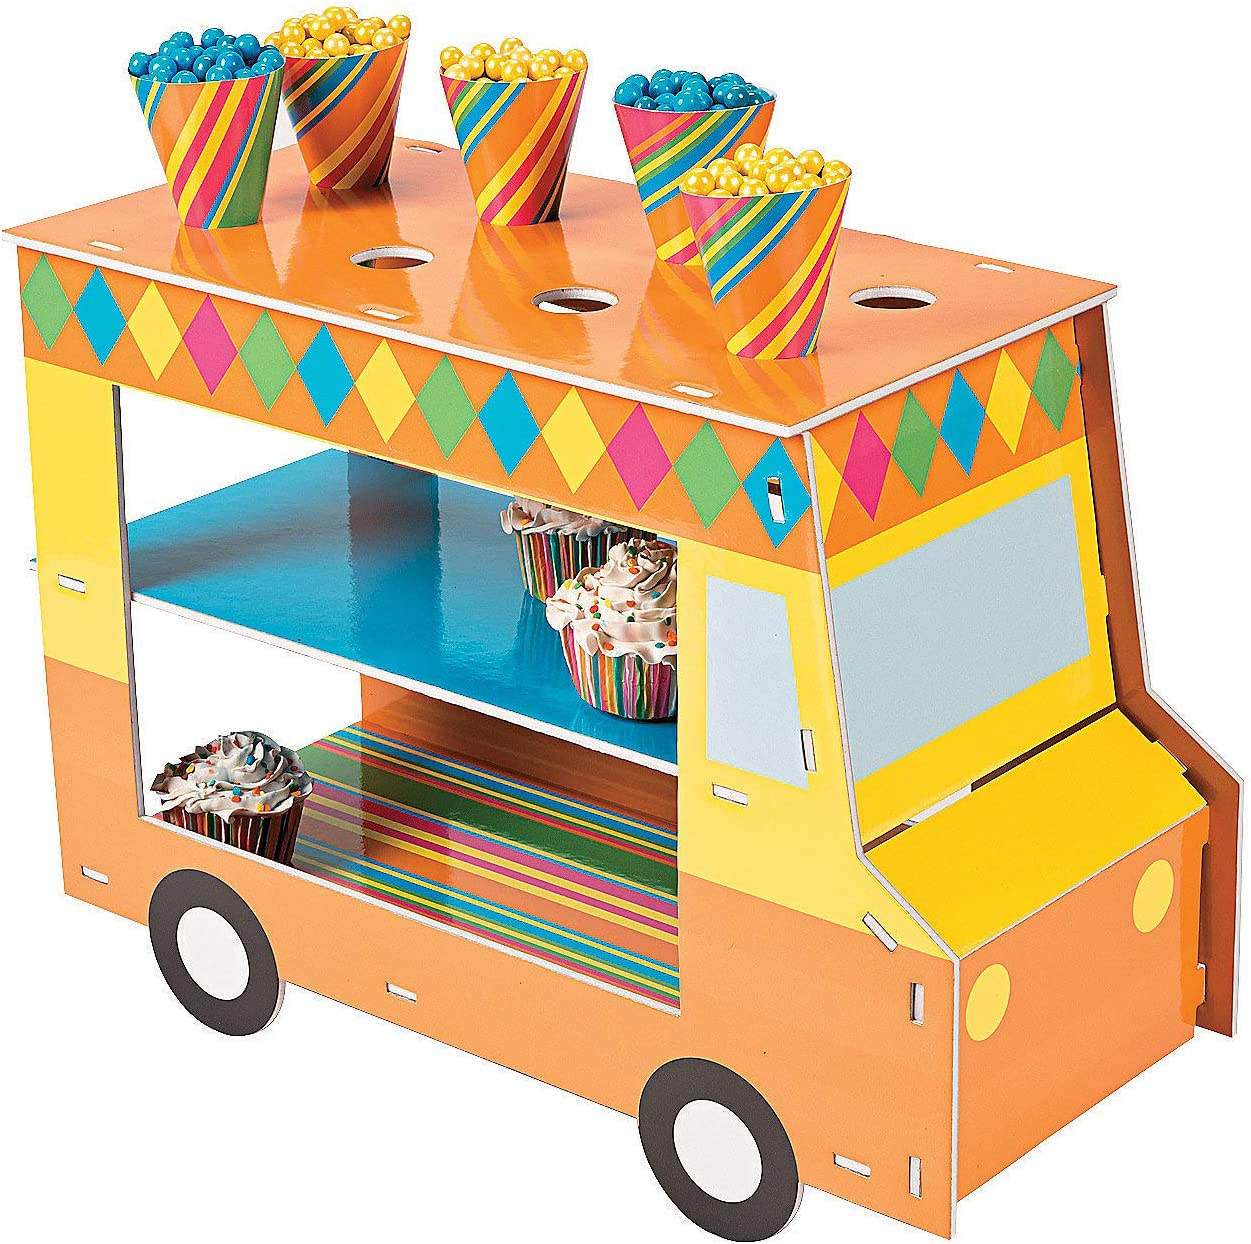 Food Truck Cupcake Treat Stand - Food Truck Party Supplies (includes treat cones)